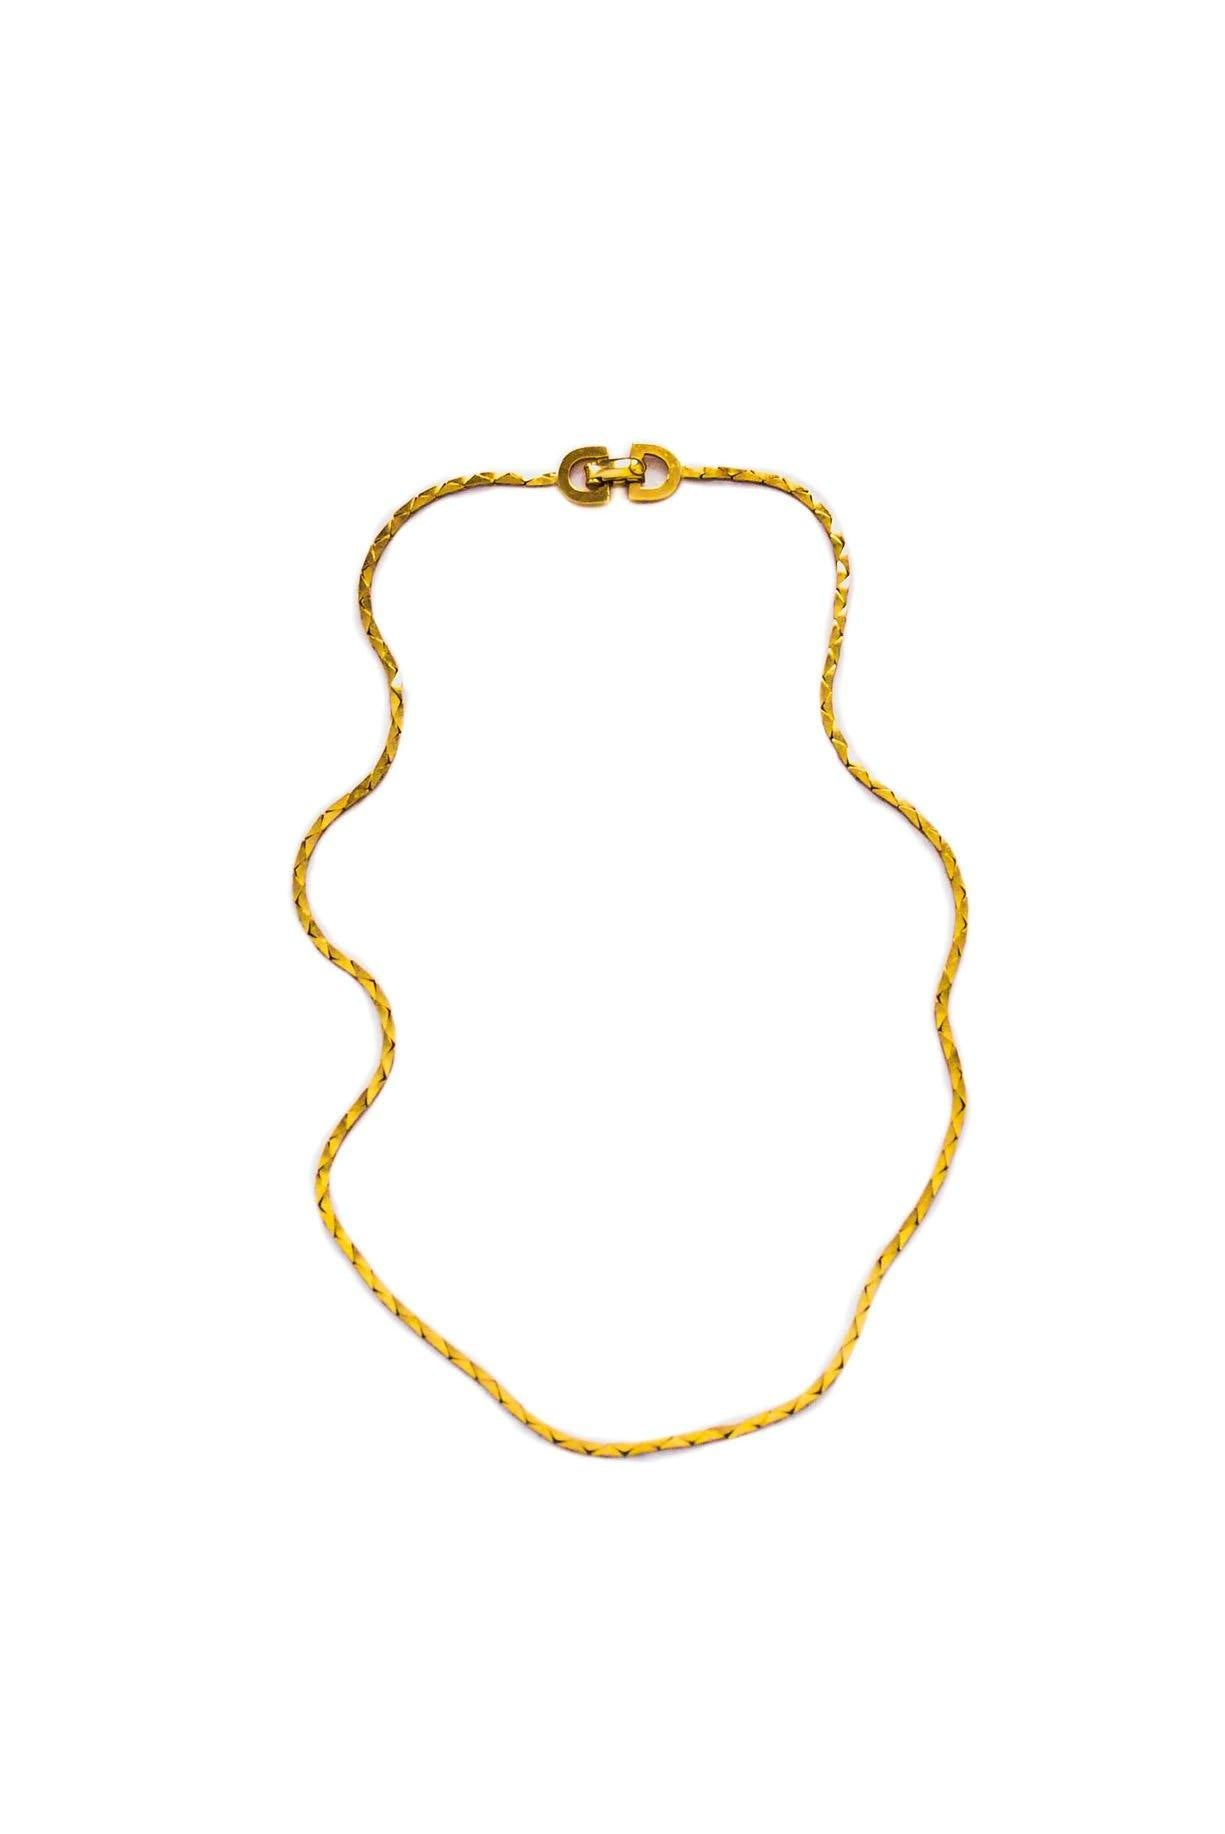 Vintage Christian Dior Dainty Box Chain Necklace from Sweet & Spark.